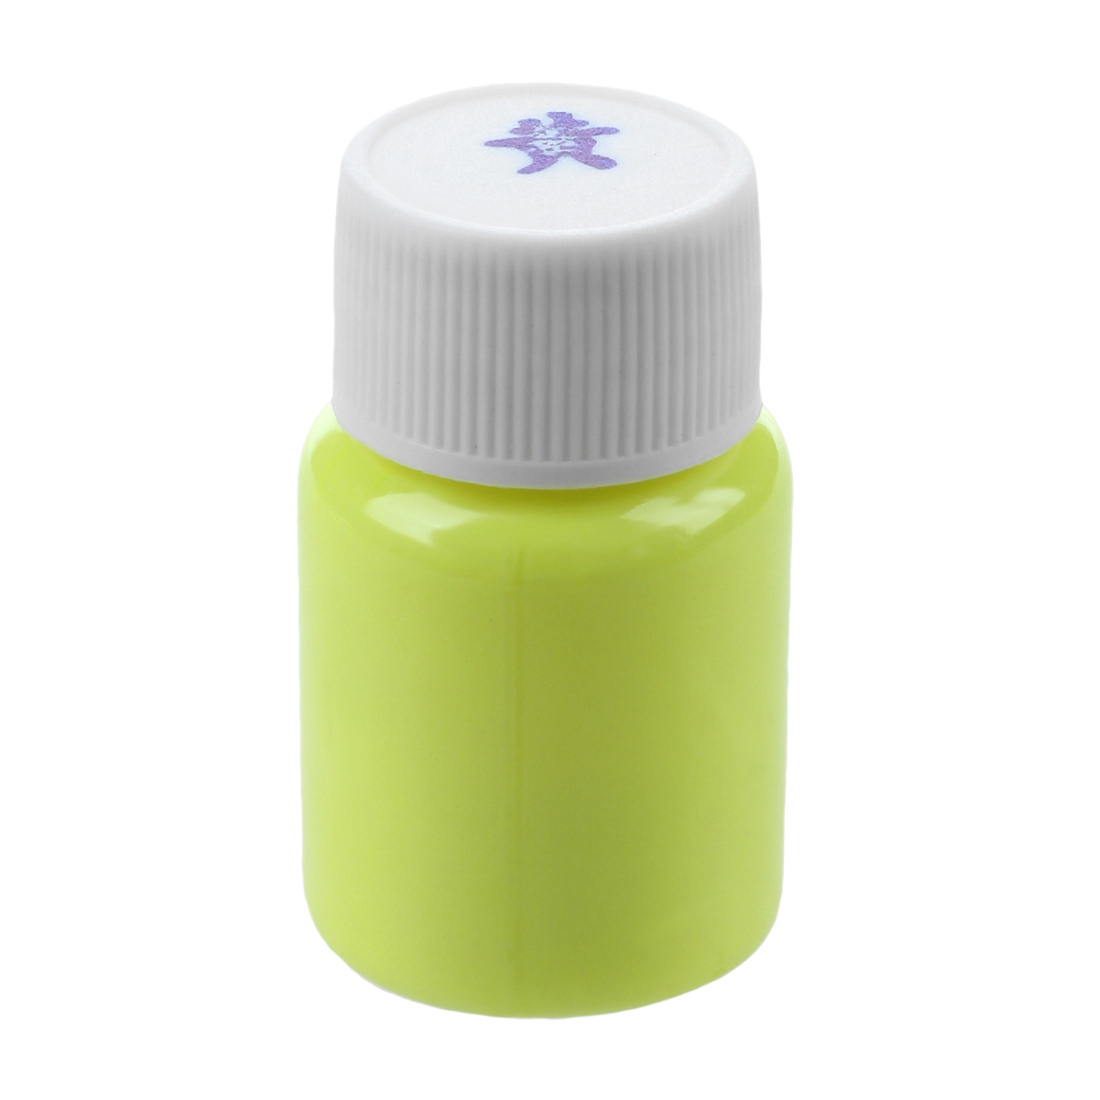 Hot sale 20g Glow in the Dark Acrylic Luminous Paint Bright Pigment Party Decoration DIY цена